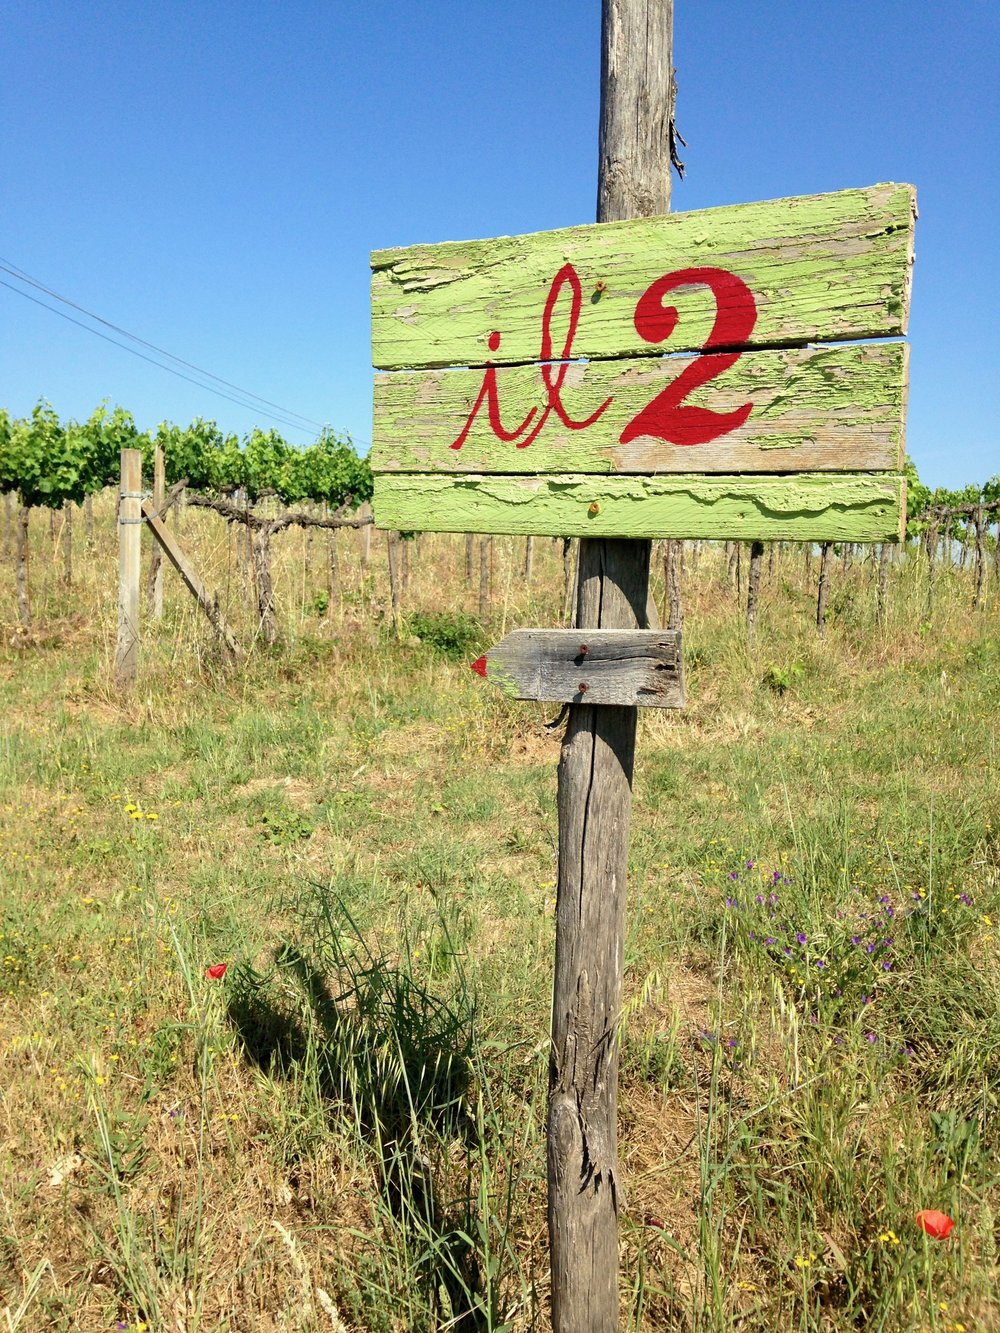 The signpost for one of the villas at the winery